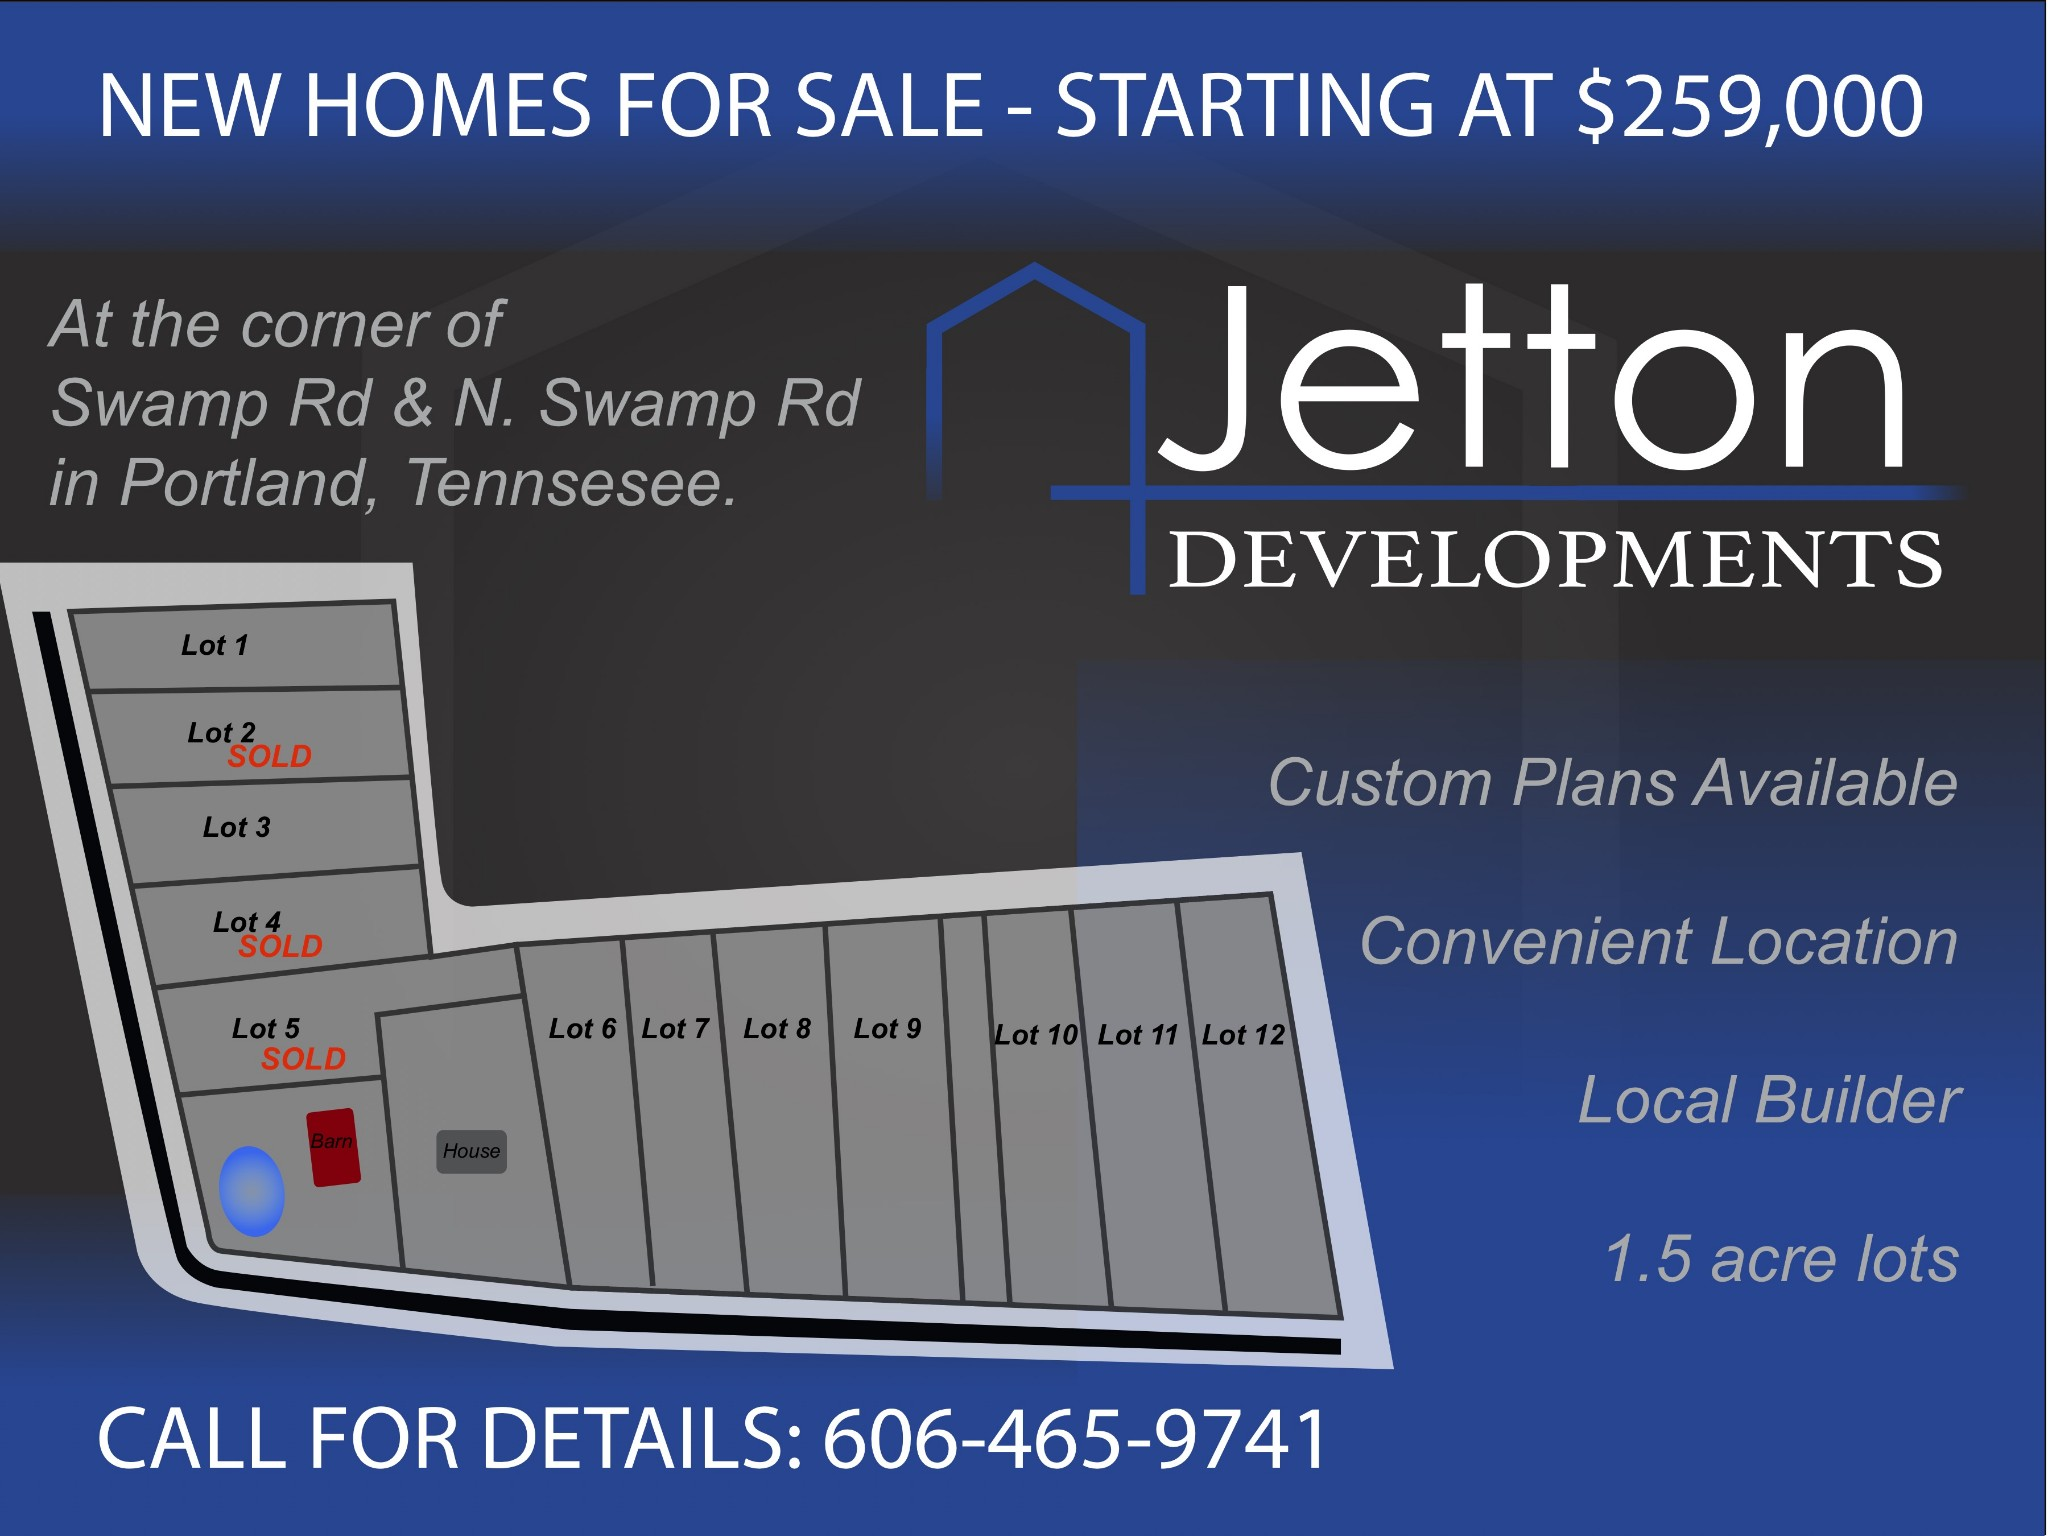 3 BR/2 BA New Construction Home On 1.31 Acre Lot!  290 N. Swamp Rd., Portland, TN.  37148